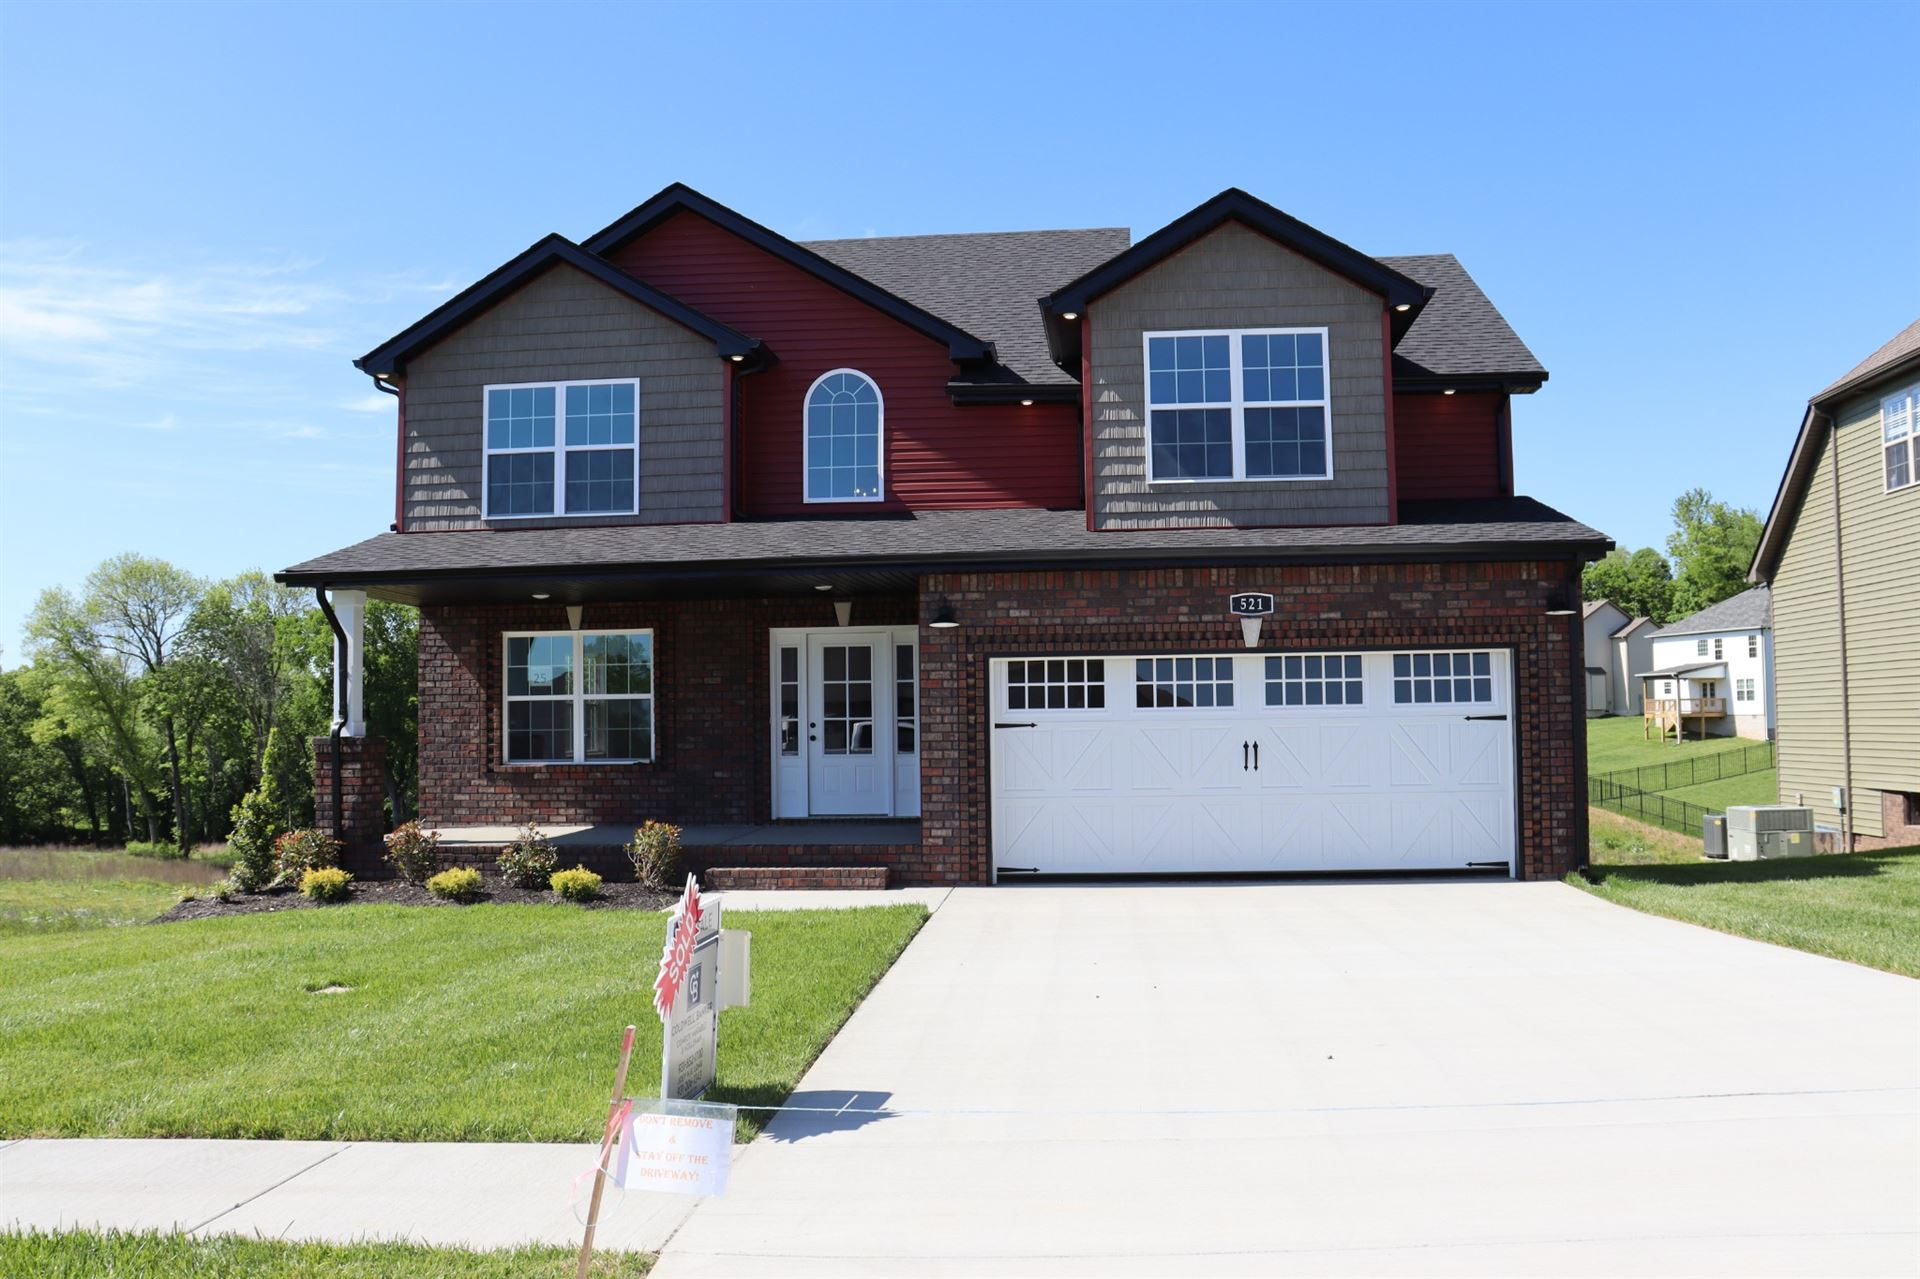 25 River Chase, Clarksville, TN 37043 - MLS#: 2199581